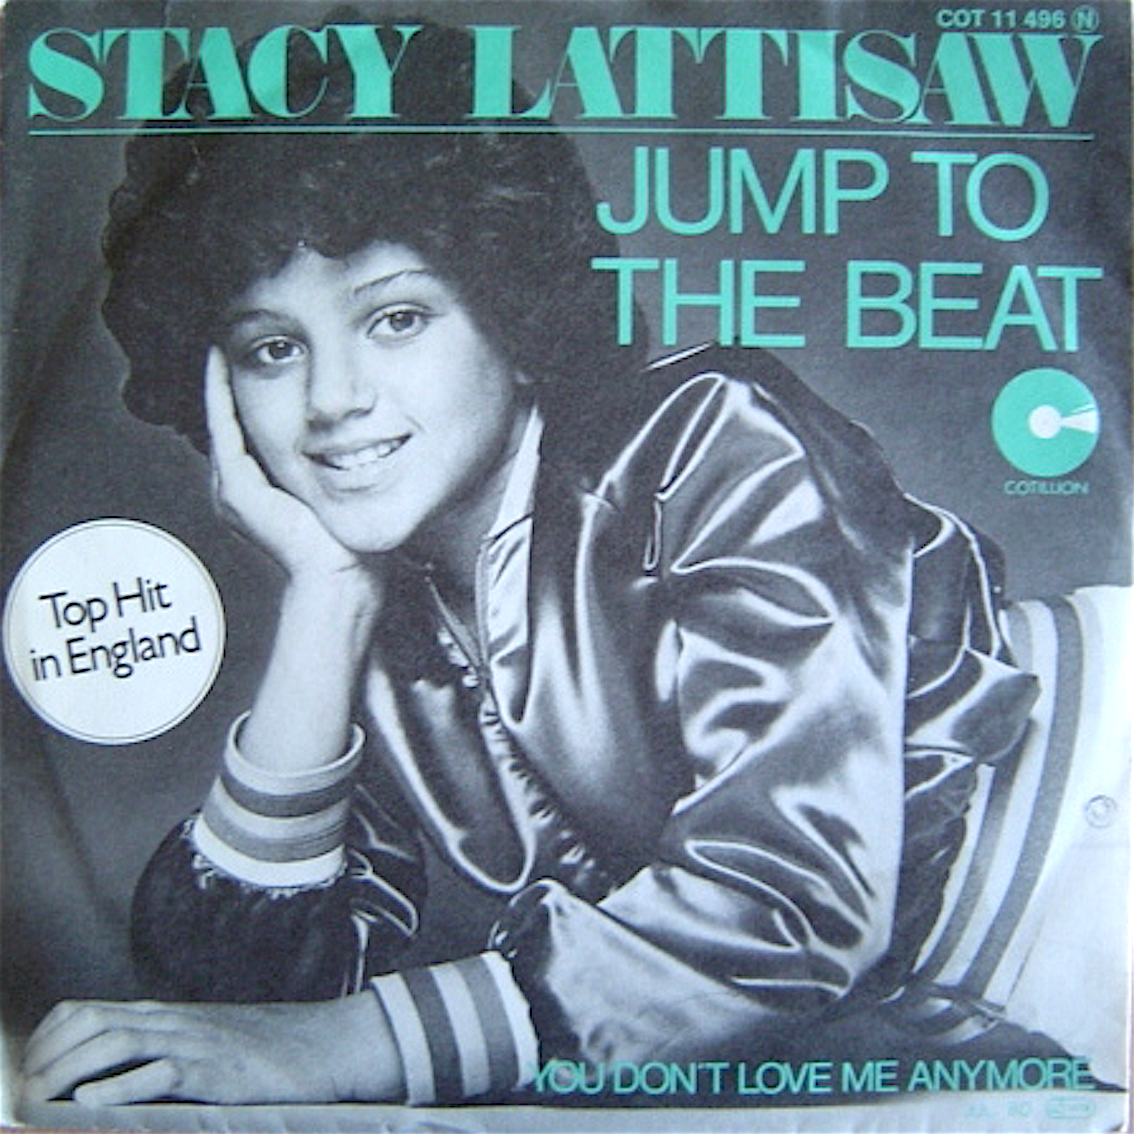 stacy_lattisaw_copertina_jump_to_the_beat